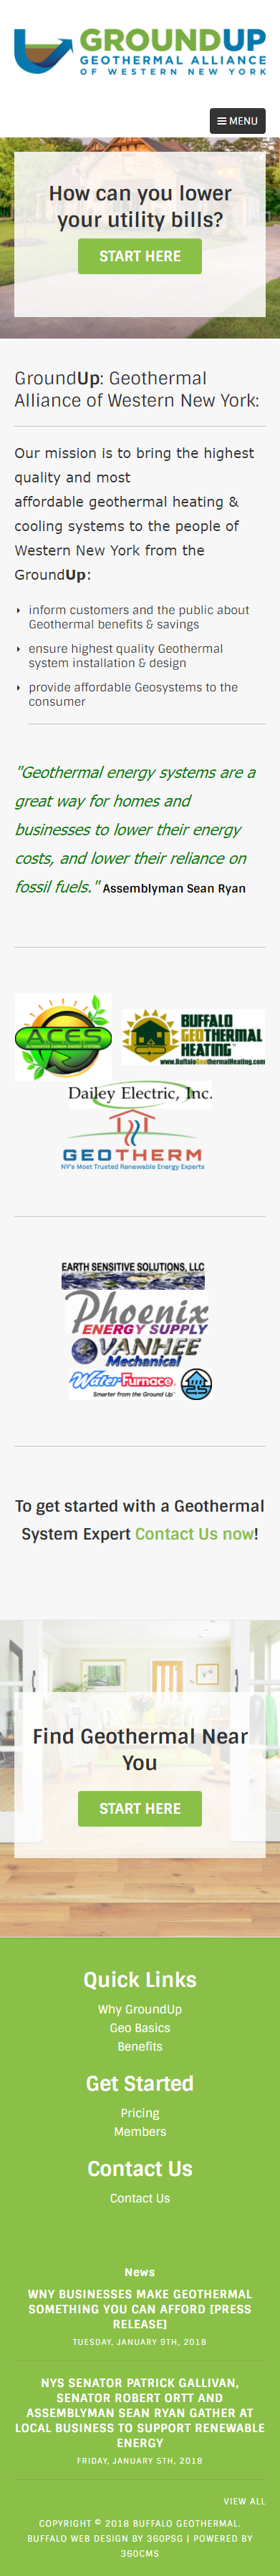 Geothermal Alliance WNY